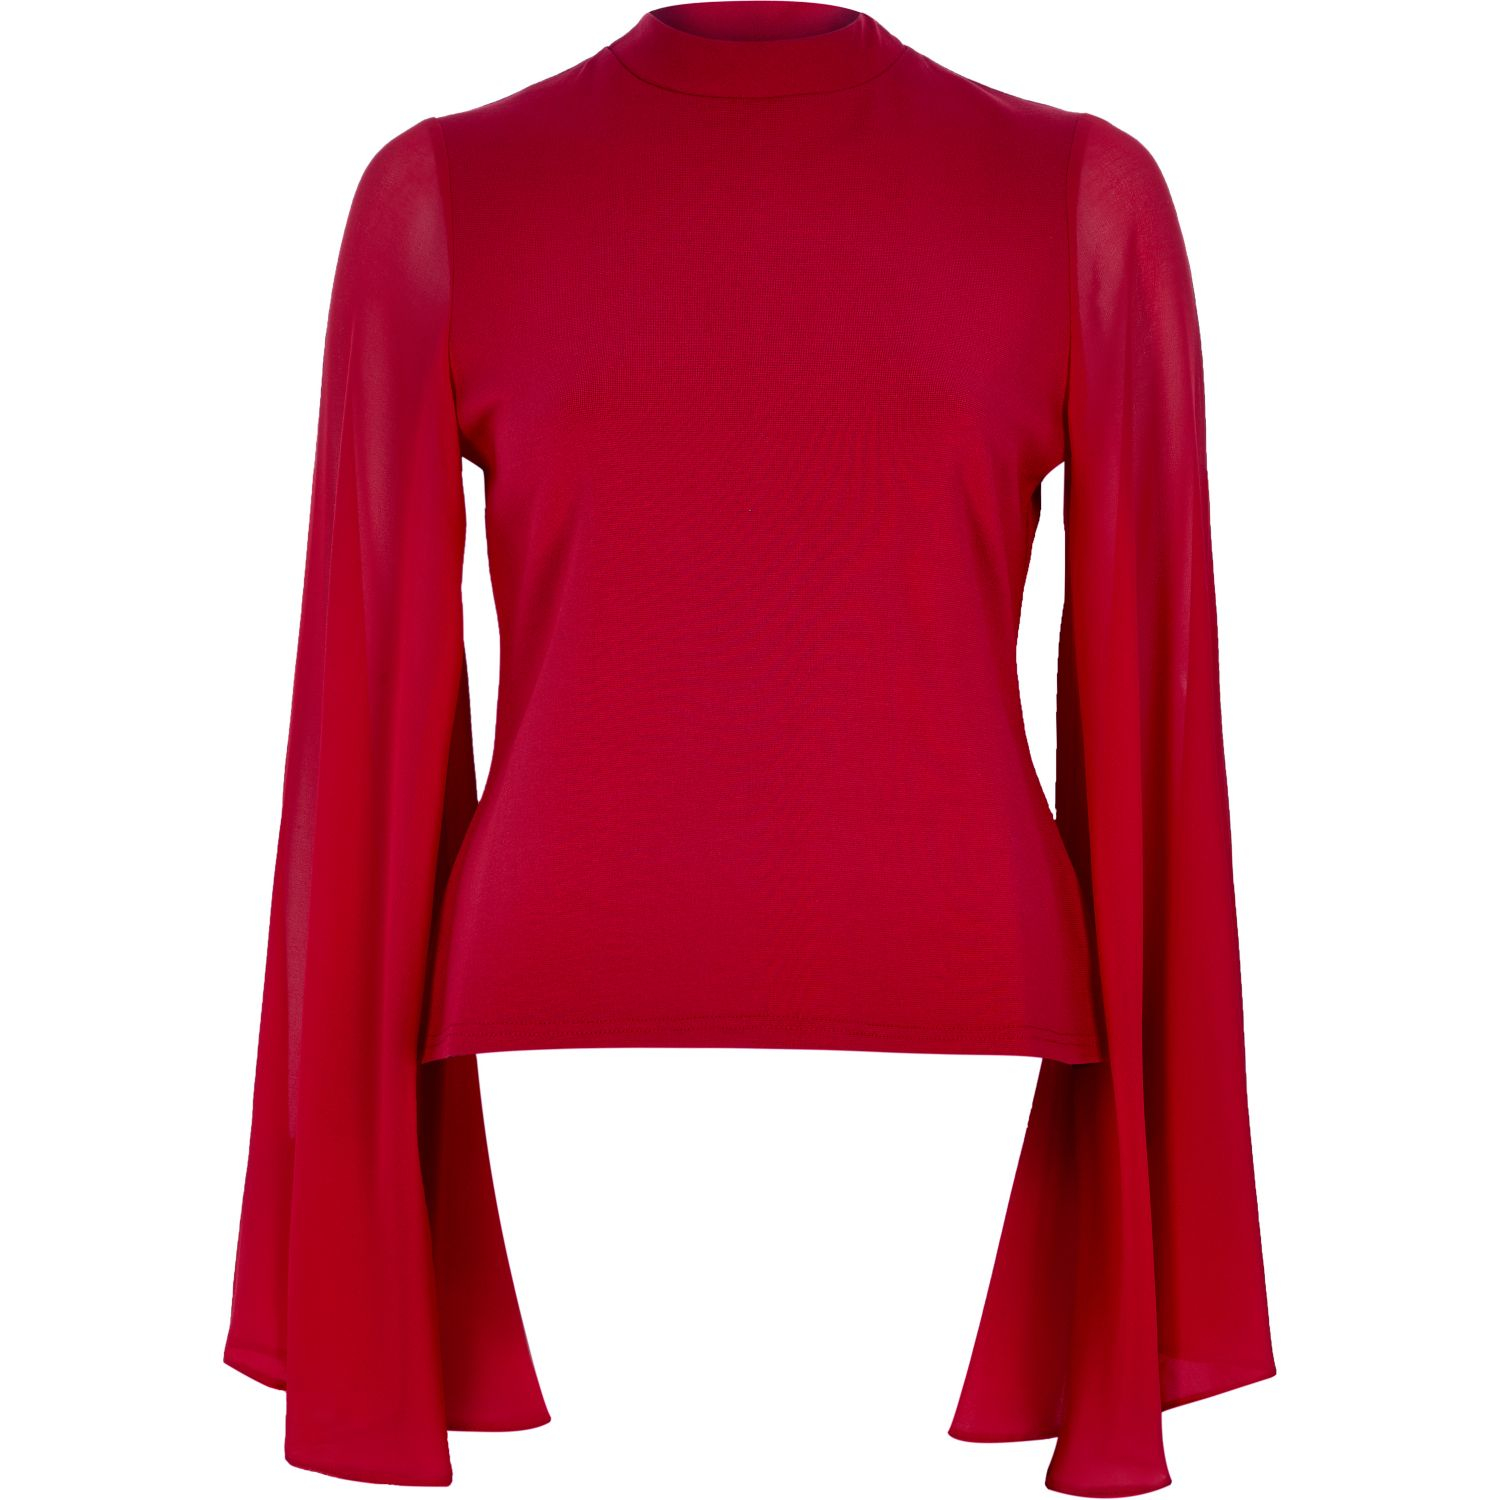 e4bab6f143c9f8 Lyst - River Island Red Flared Sleeve Cut-out Back Top in Red